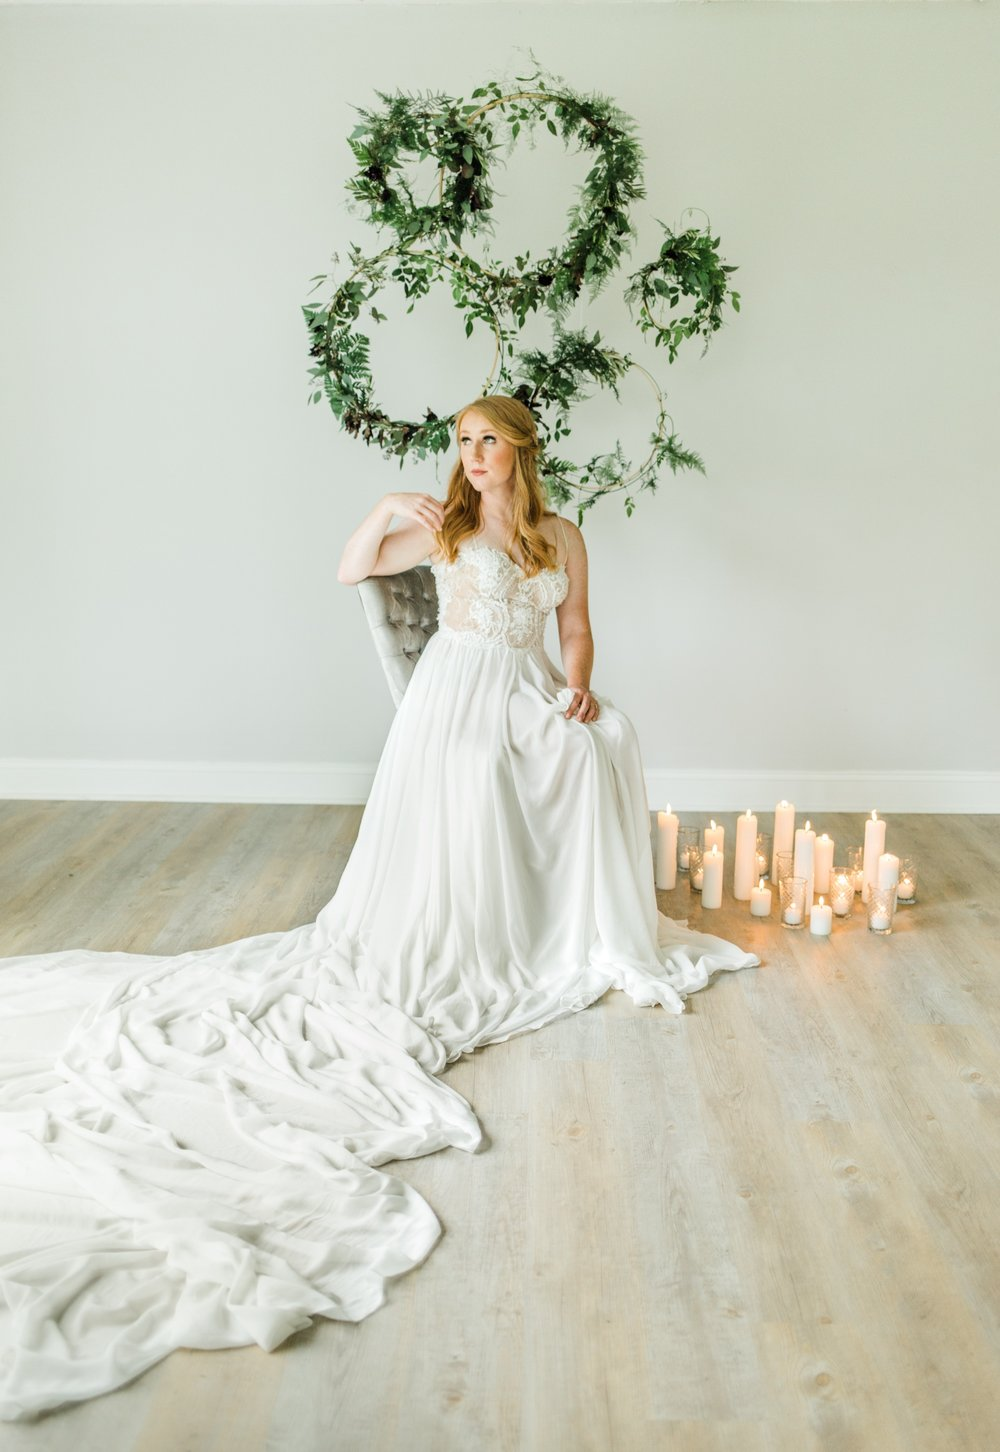 The most amazing train on a gown. Styling by jennifer of {feather + oak}, photography by Sarah Sidwell Photography, florals by Emily Kennedy of Kennedy Occasions.